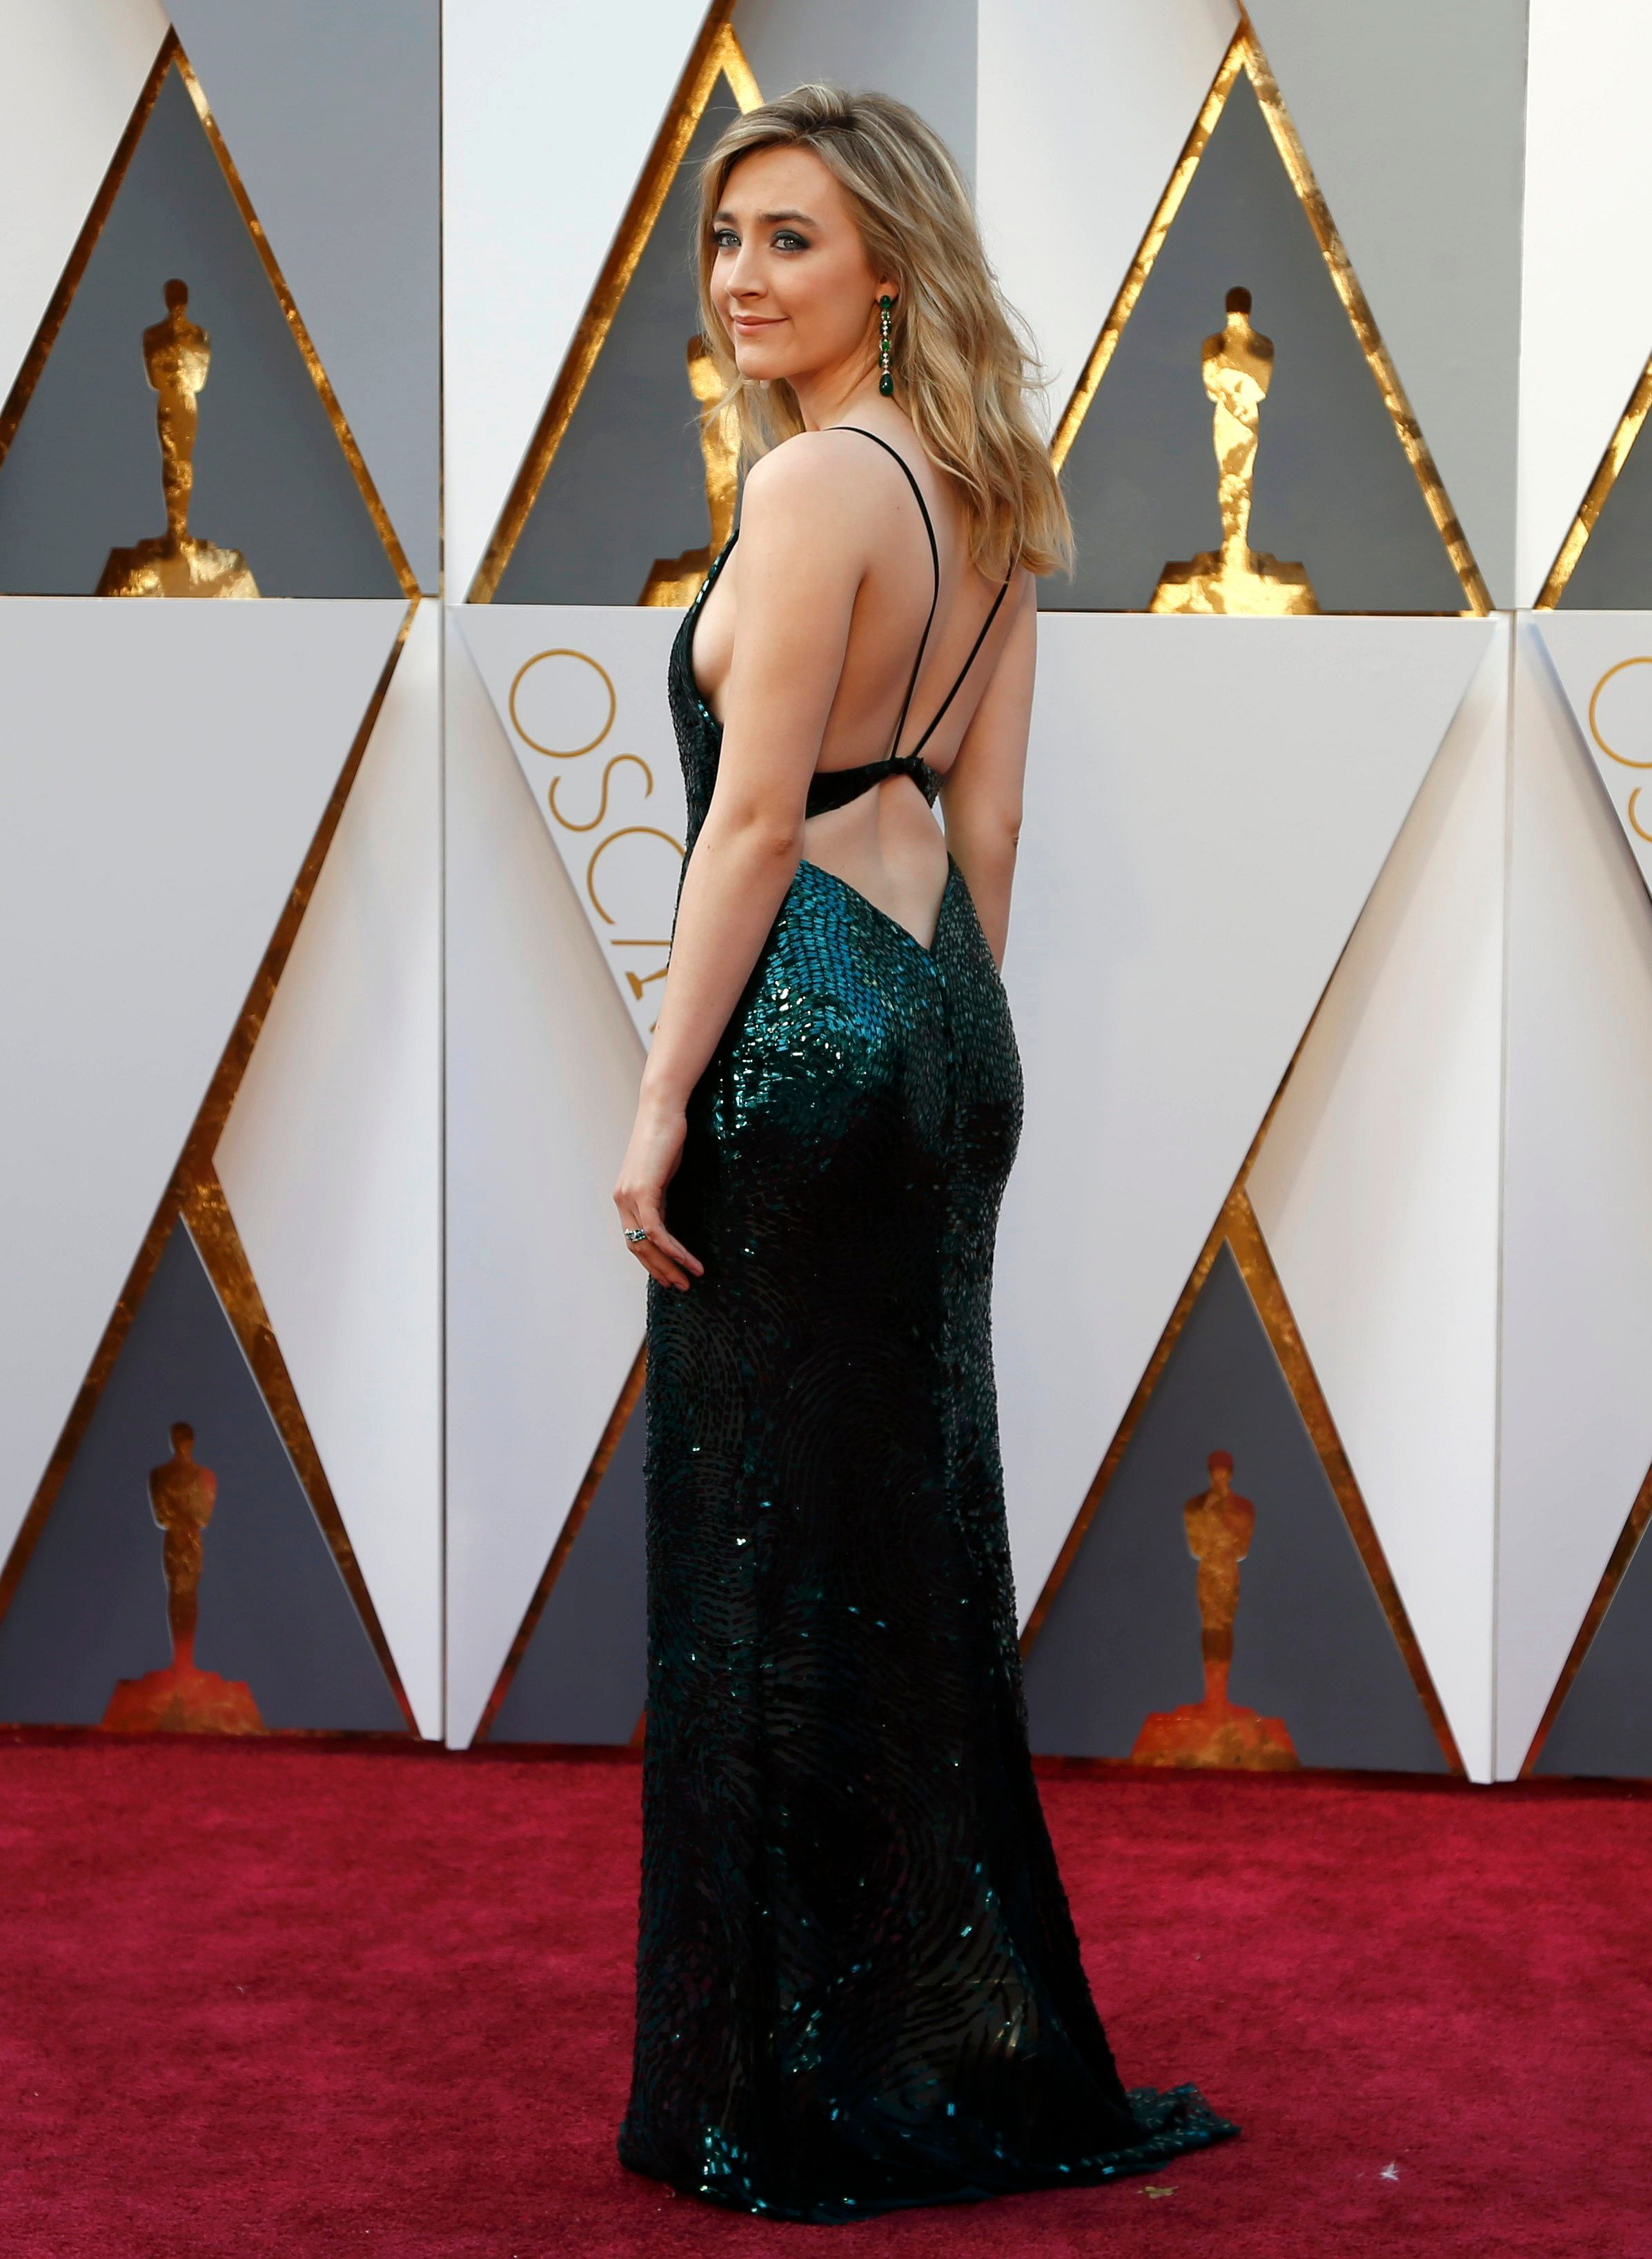 Fashion At The Oscars 2016 Fashion News Amp Top Stories